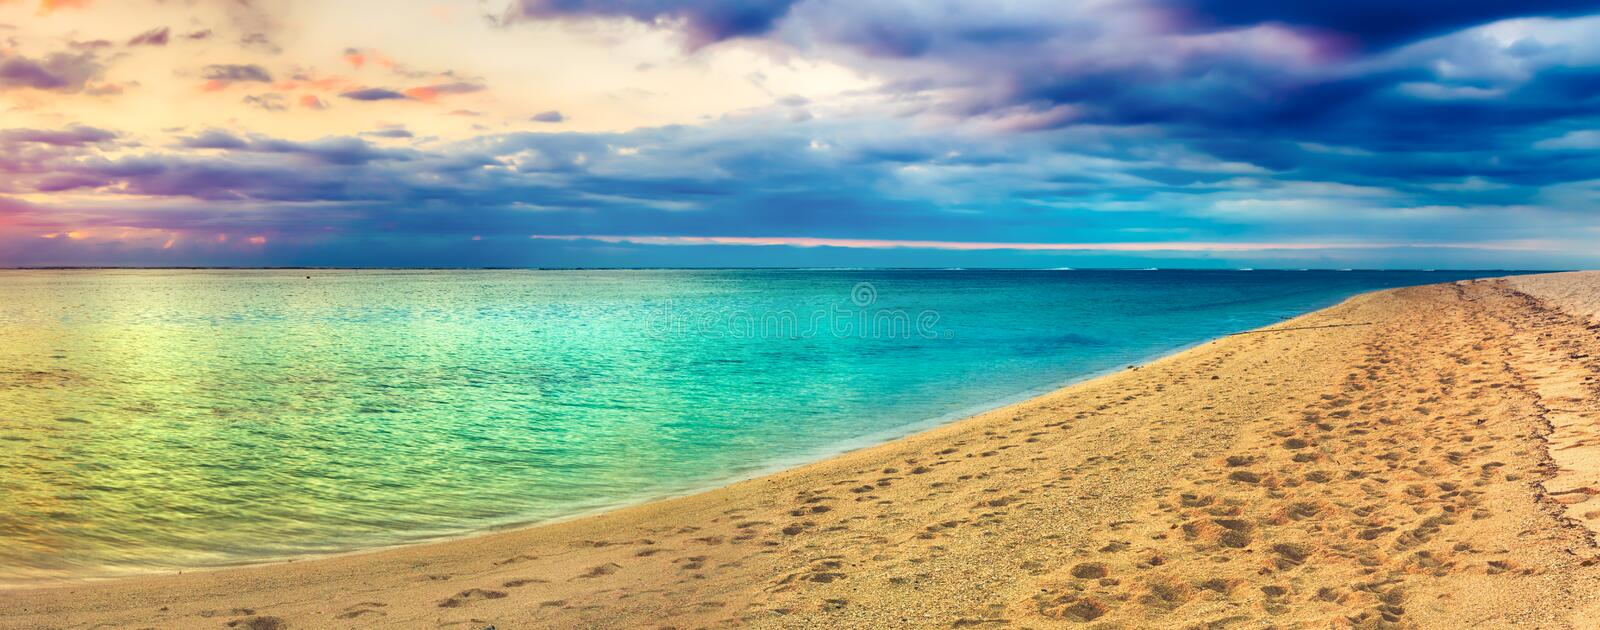 Seaview at sunset. Amazing landscape. Beautiful beach panorama stock image